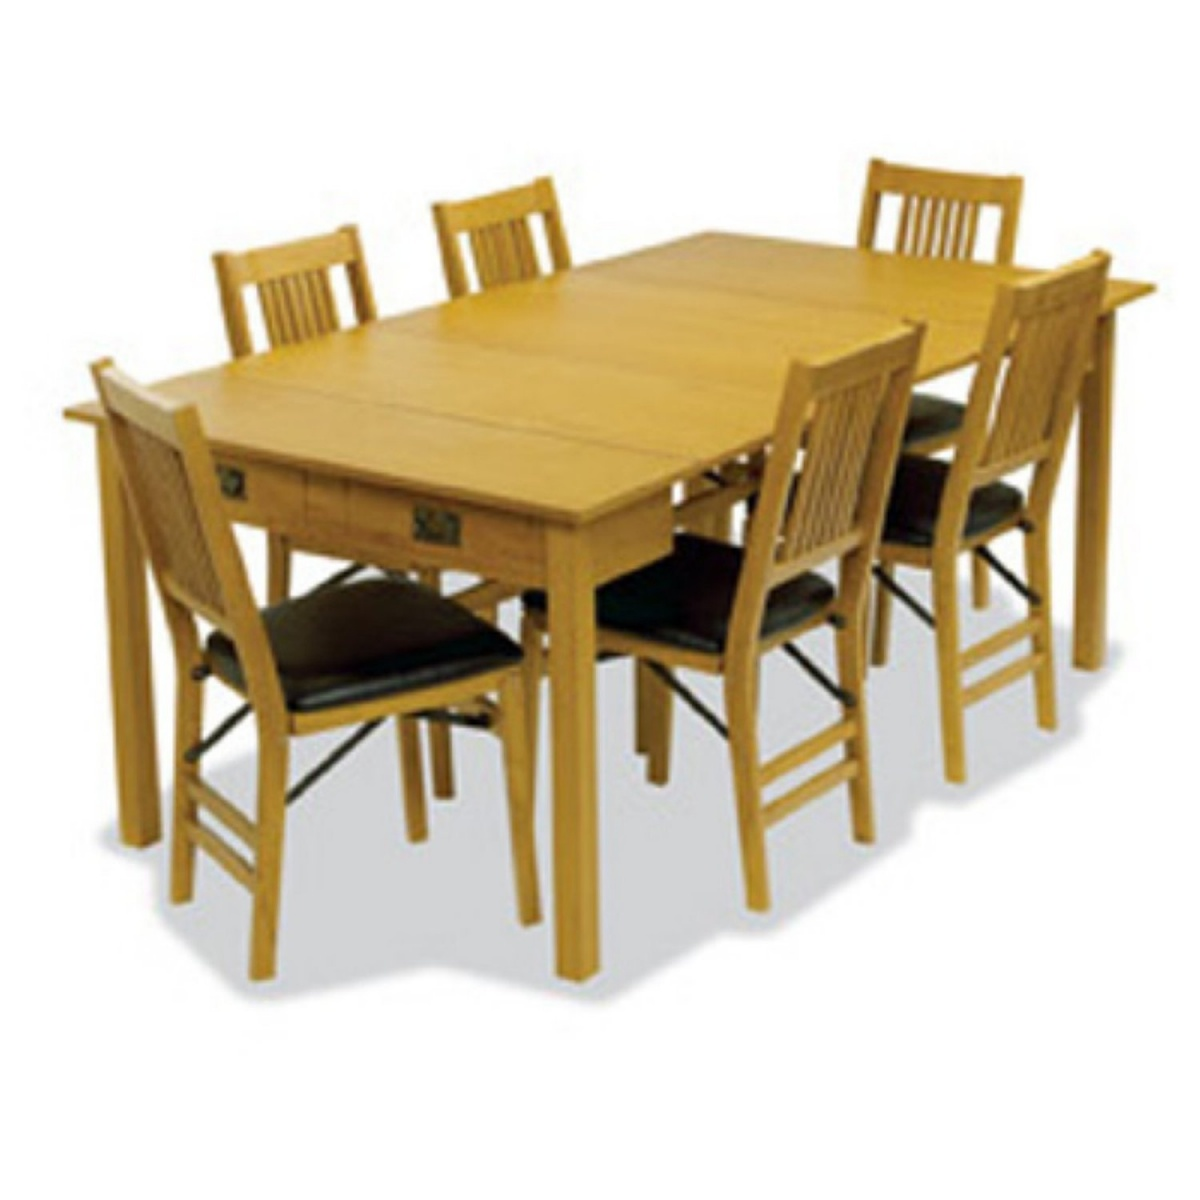 Dining table for small space large and beautiful photos photo to select dining table for - Dining table small spaces concept ...